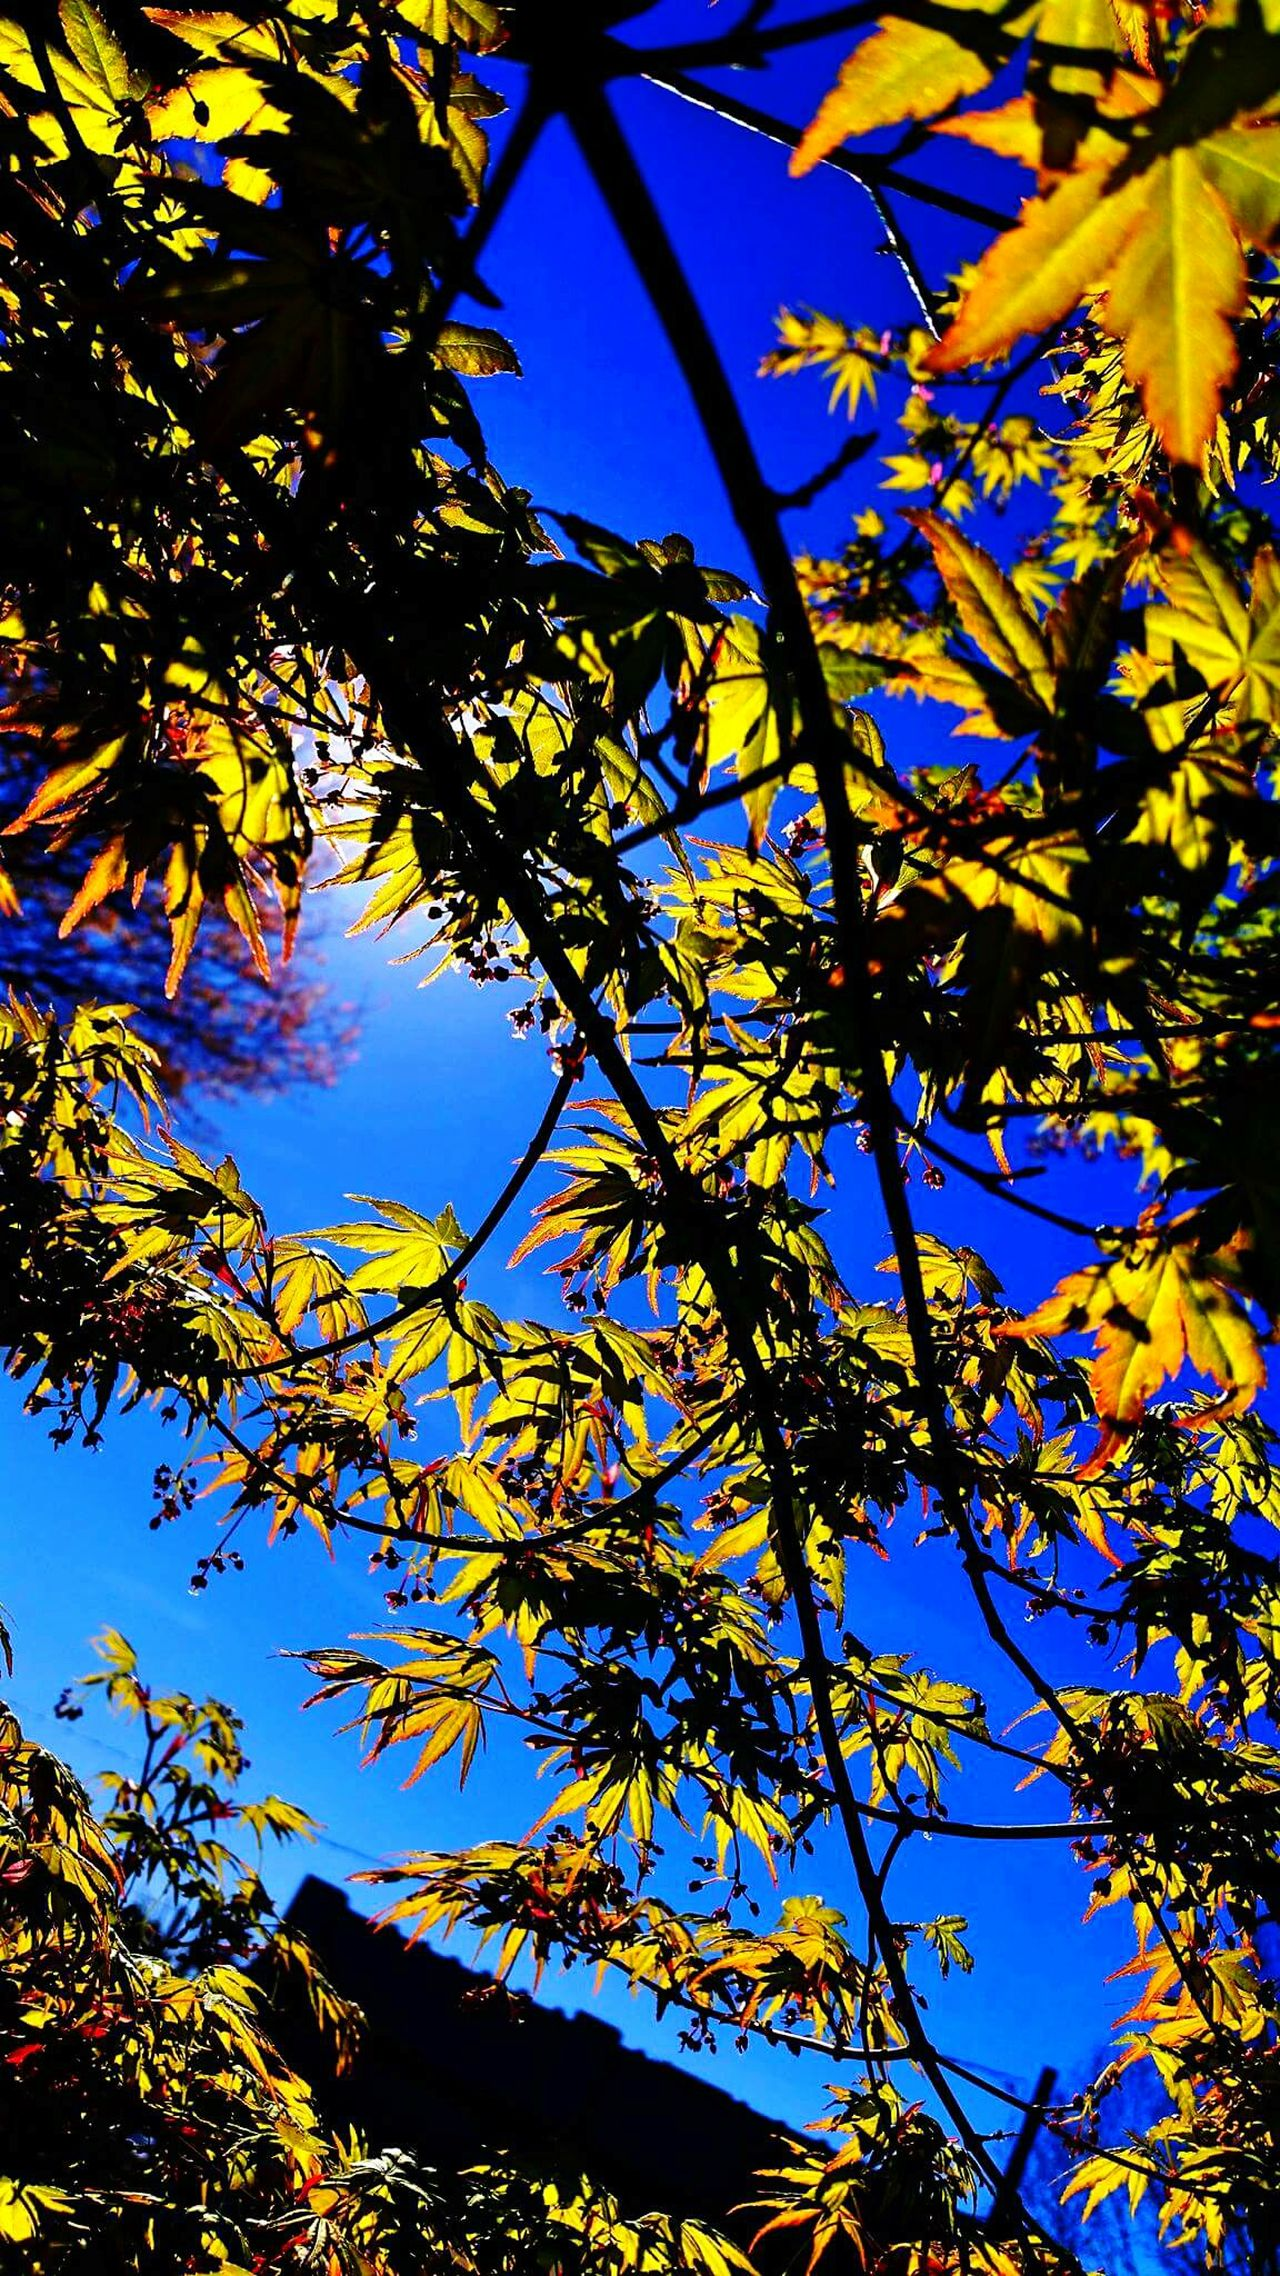 Maple trees my favorite. Epic Shot Photography Gettyimage Getty X EyeEm Northwestnature EyeEm NaturesNirvana Nationalgeographic Gettyimagesgallery Buyme Gettyimagesinstagramgrant Wild & Pure Treetastic For The Love Of Trees ~ King5spring Protecting Where We Play EyeEm Nature Lover Getty X EyeEm Images Nature_collection Landscape_collection EyeEmNatureLover Q13spring EyeEmxGettyImages Getty Images Getty & Eyeem Grants For Photographers Springtime ,march Showcase EyeEm Gallery